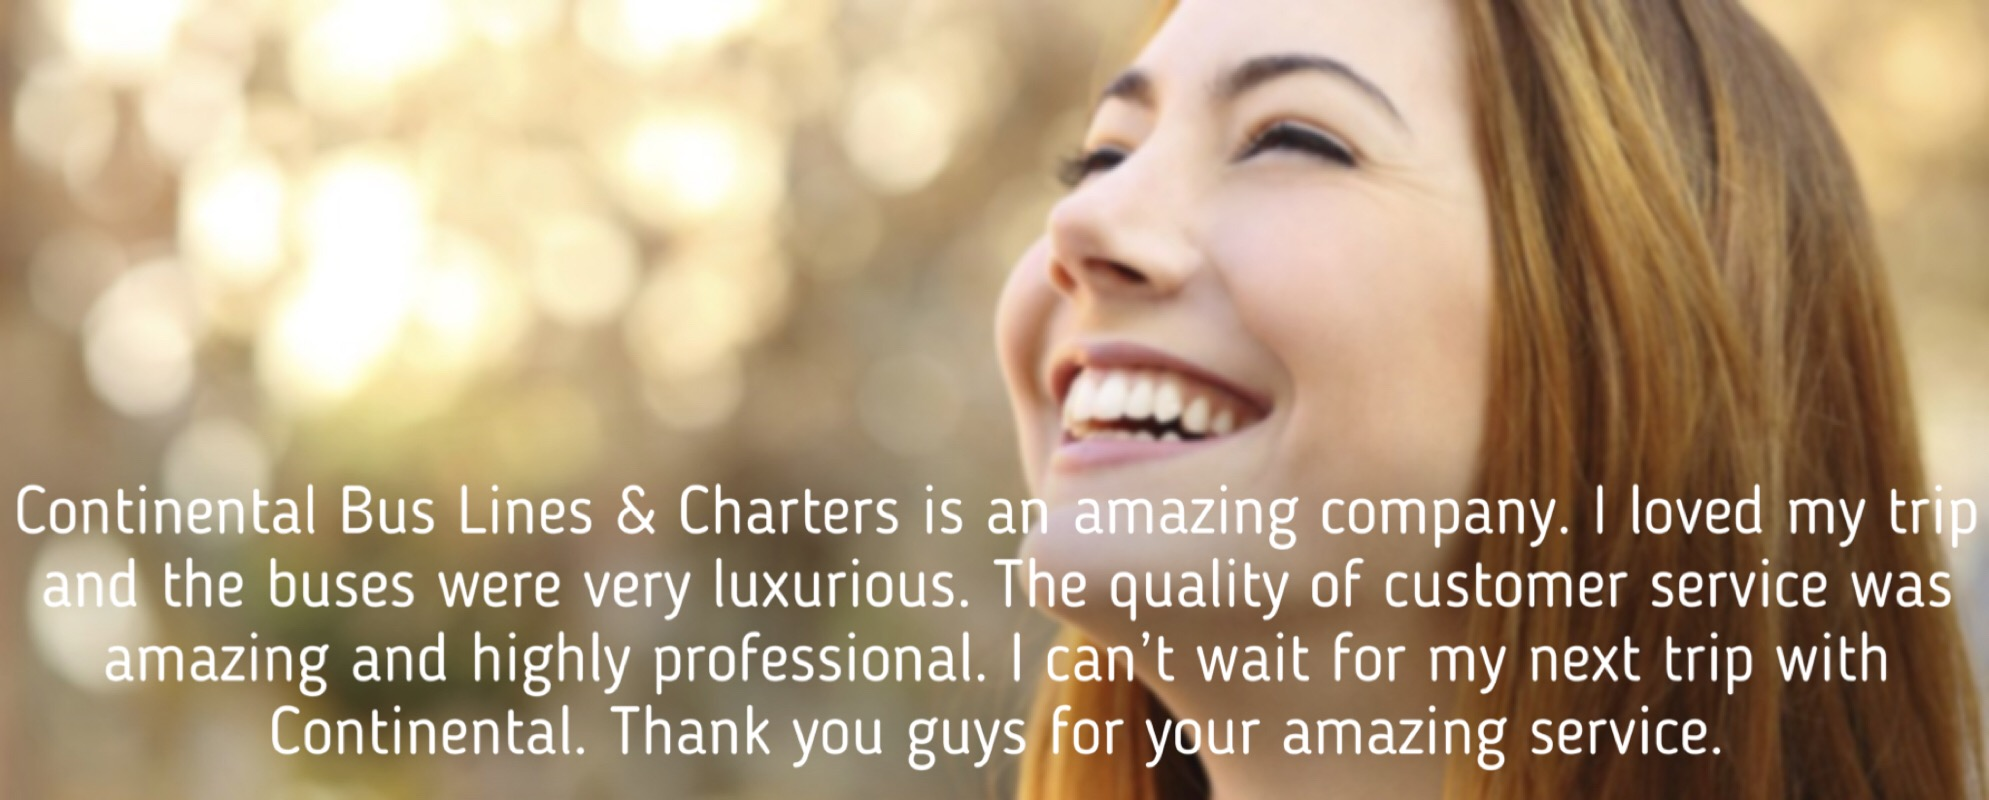 Continental Charters Positive Review Photo. Amazing Company, I loved my trip on the luxurious buses. Their customer service was amazing and highly professional. Can't wait for my next trip with Continental! Smiling happy lady